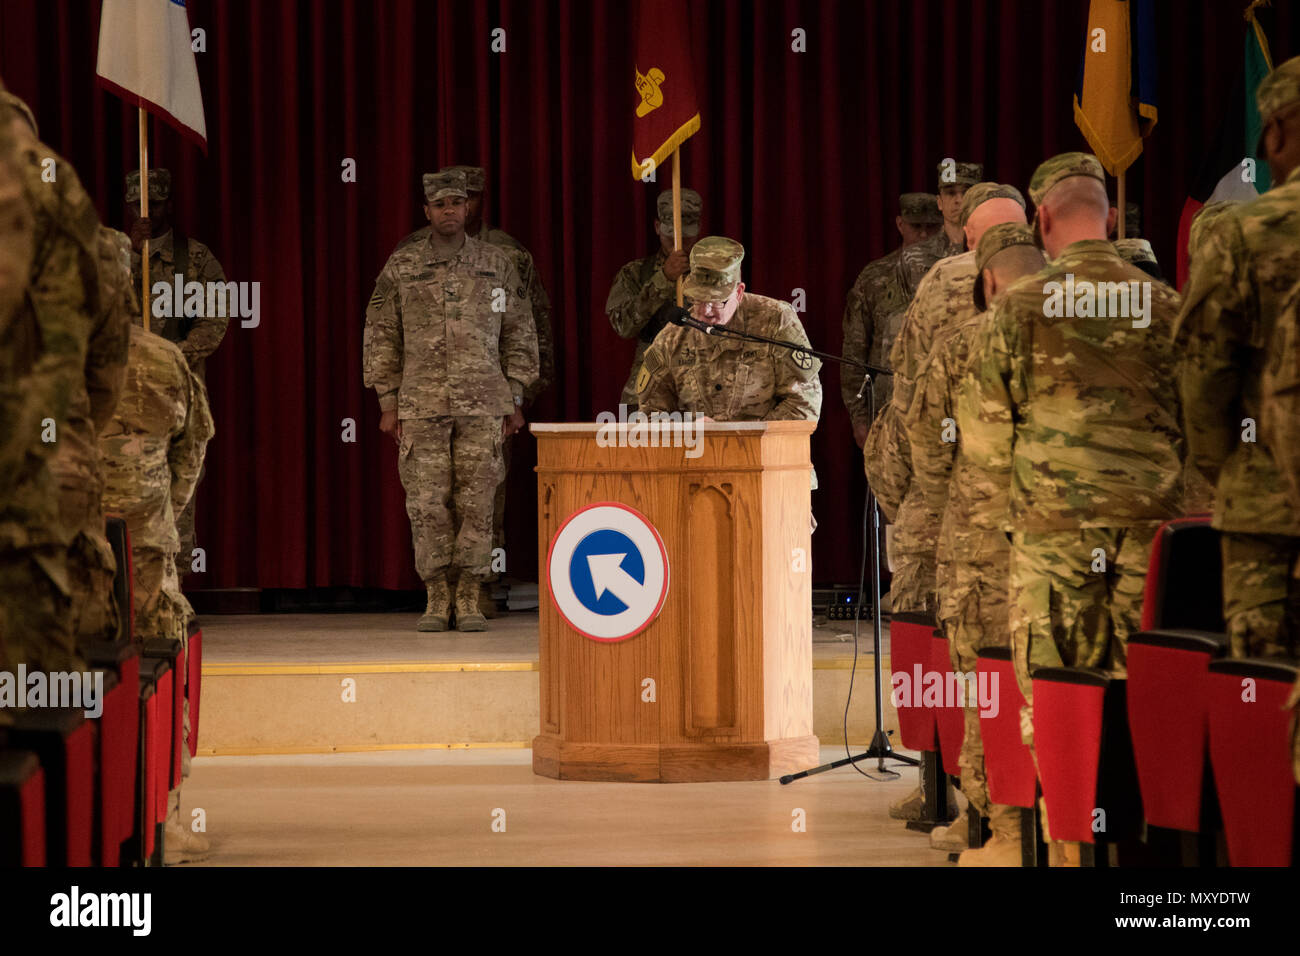 Lt. Col. David Langer, a chaplain with the 451st Sustainment Command (Expeditionary), reads the invocation before the 451st ESC and 316th ESC transfer of authority ceremony at Camp Arifjan, Kuwait, Dec. 23, 2016. (U.S. Army Photo by Staff Sgt. Dalton Smith) - Stock Image